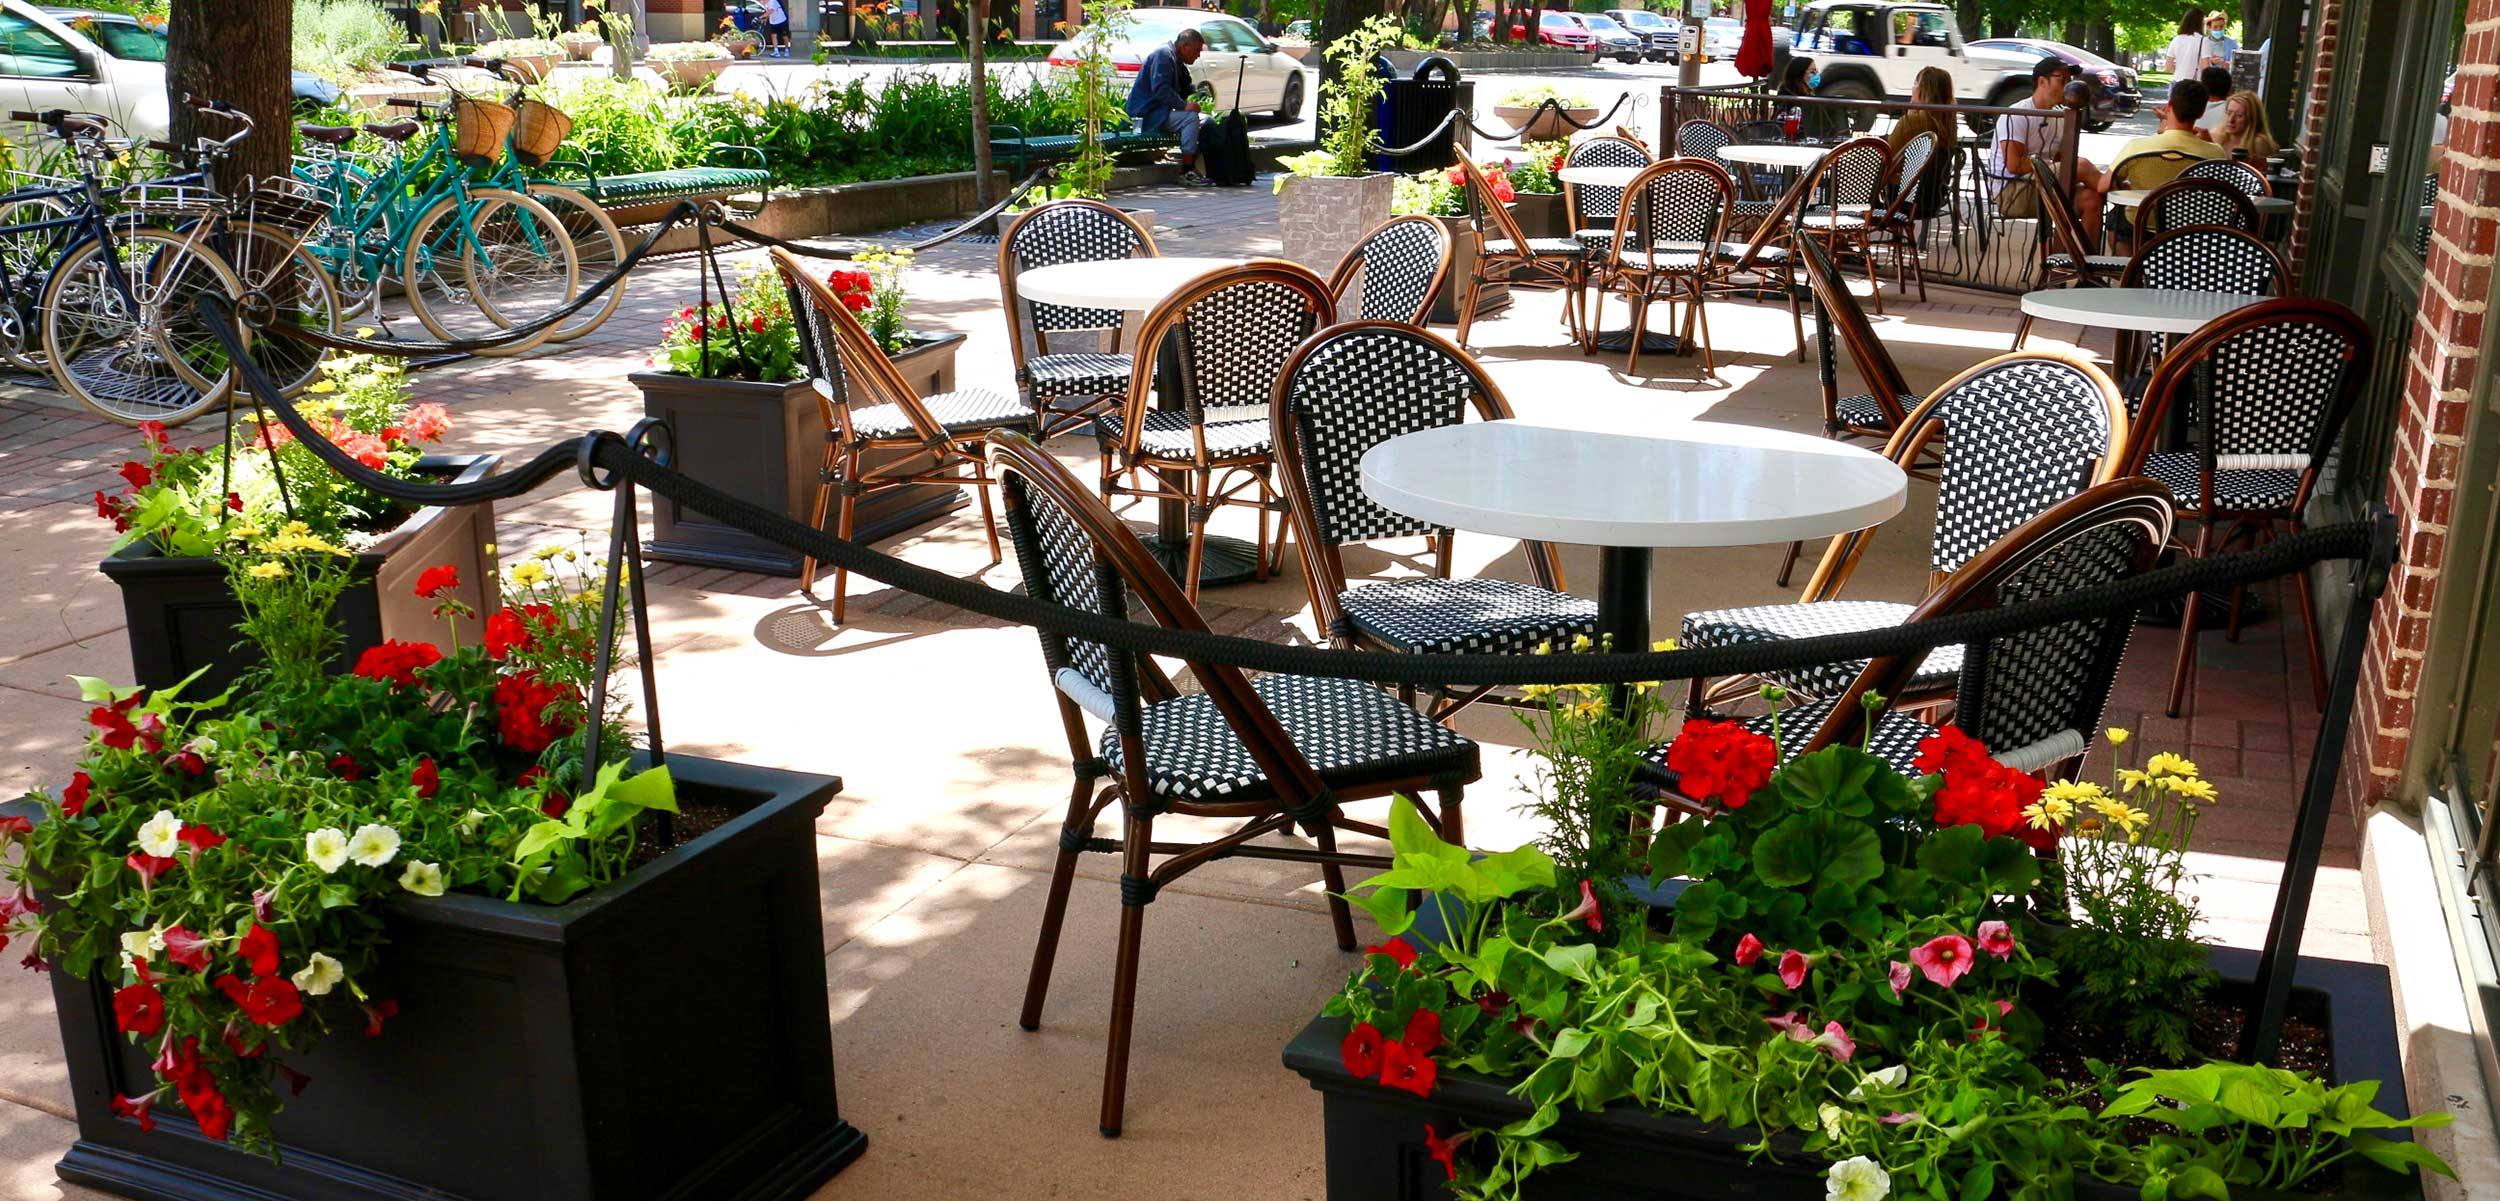 Ace Cafe outdoor tables with flowers in planters